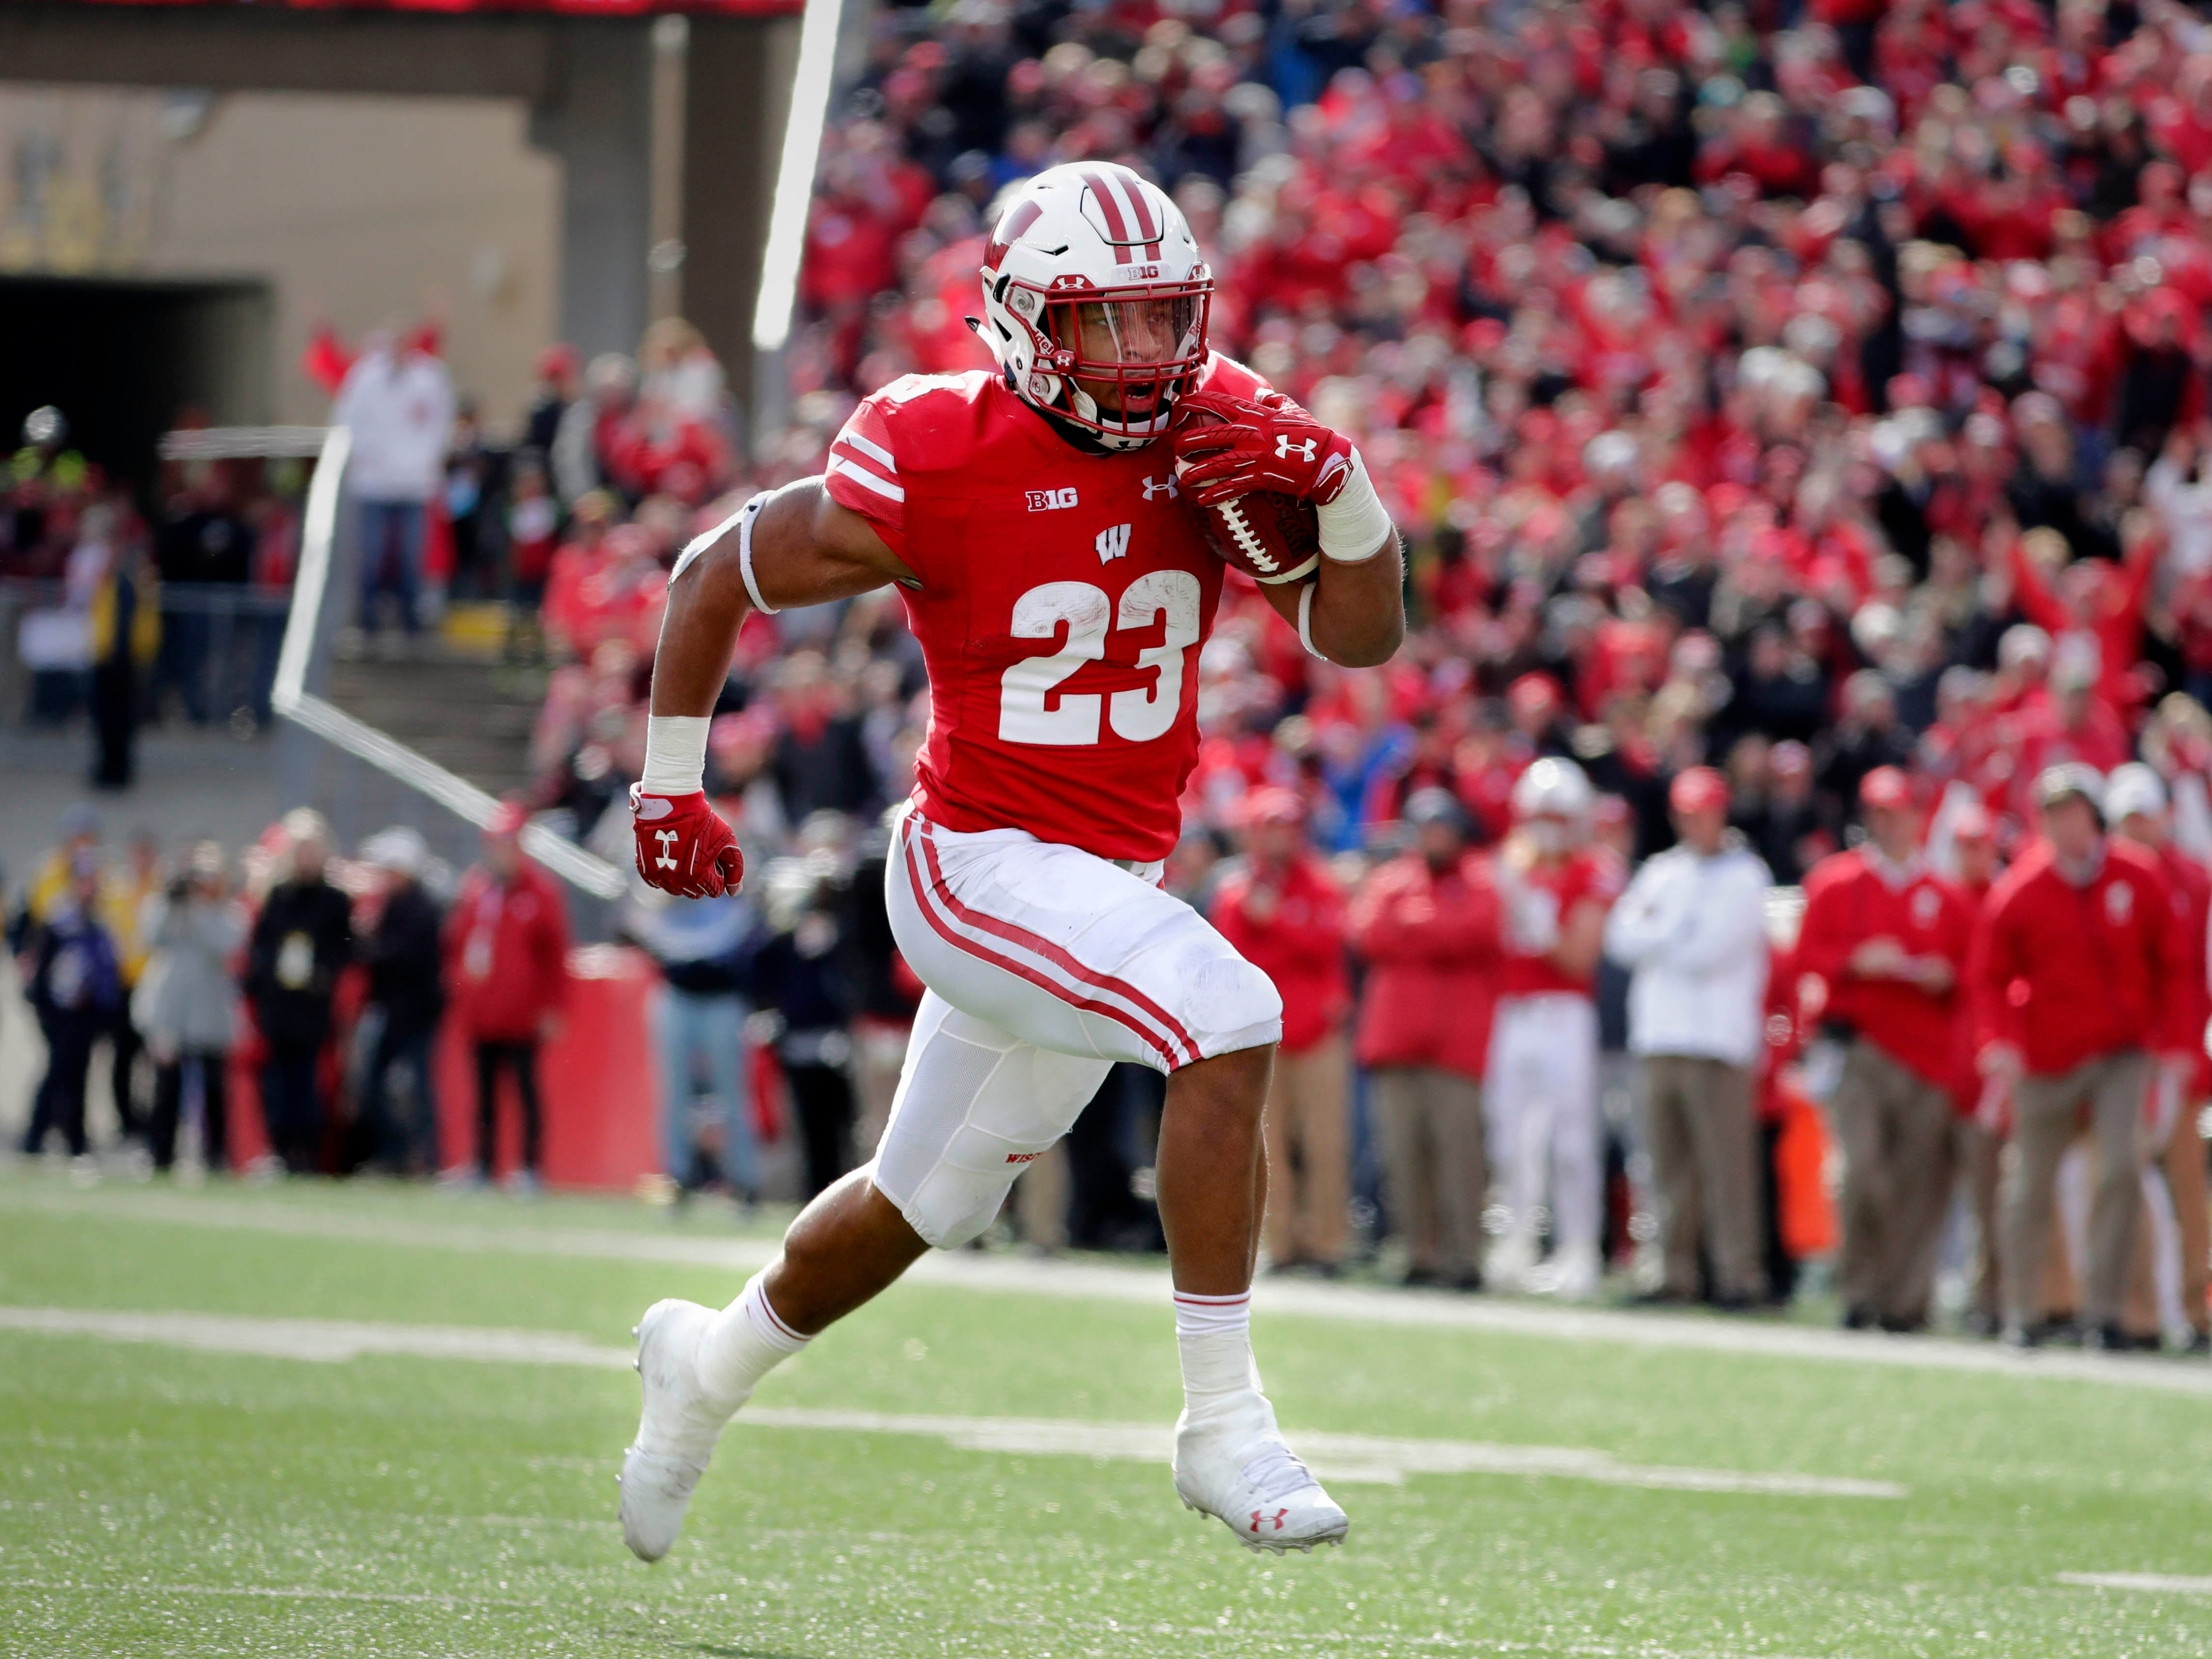 Badgers running back Jonathan Taylor finds a clear path to the end zone against Rutgers on Saturday.